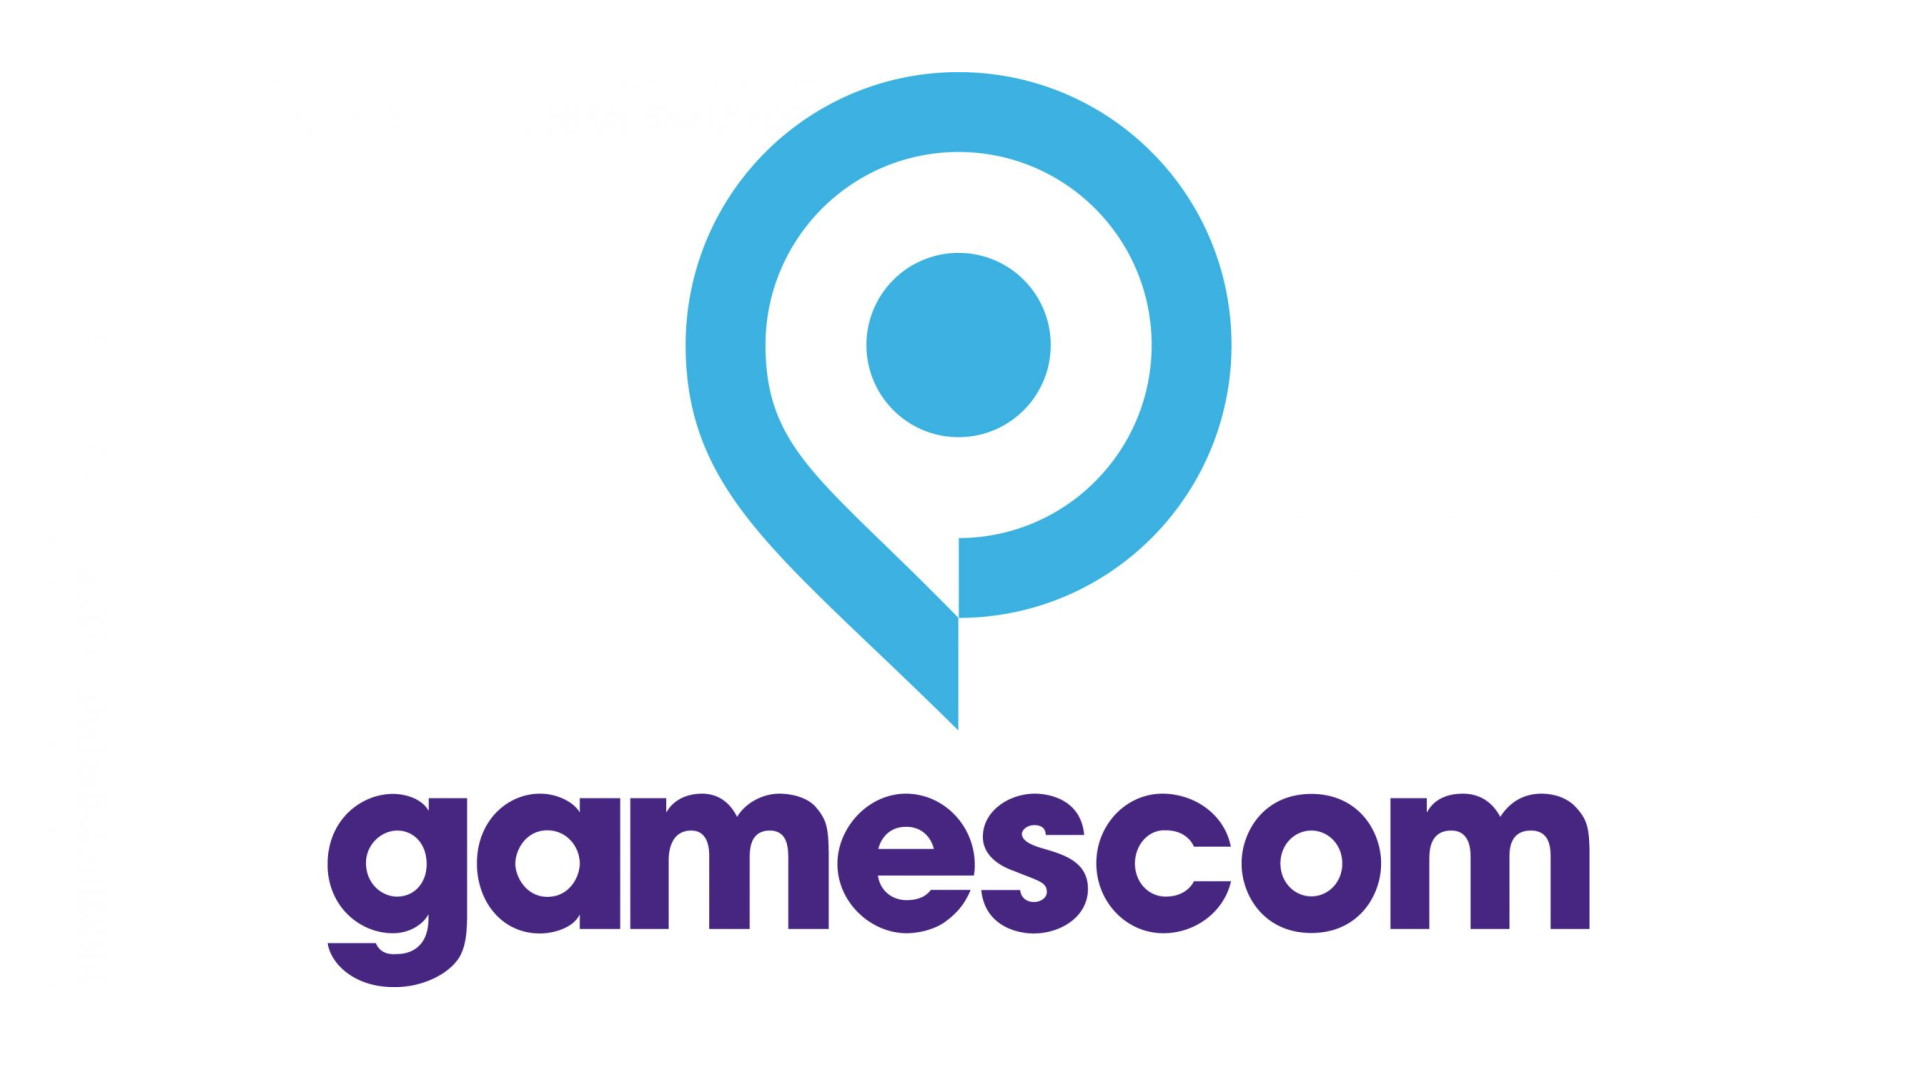 Photo of Gamescom 2020, An Event Scheduled Four Months From Now, is Cancelled